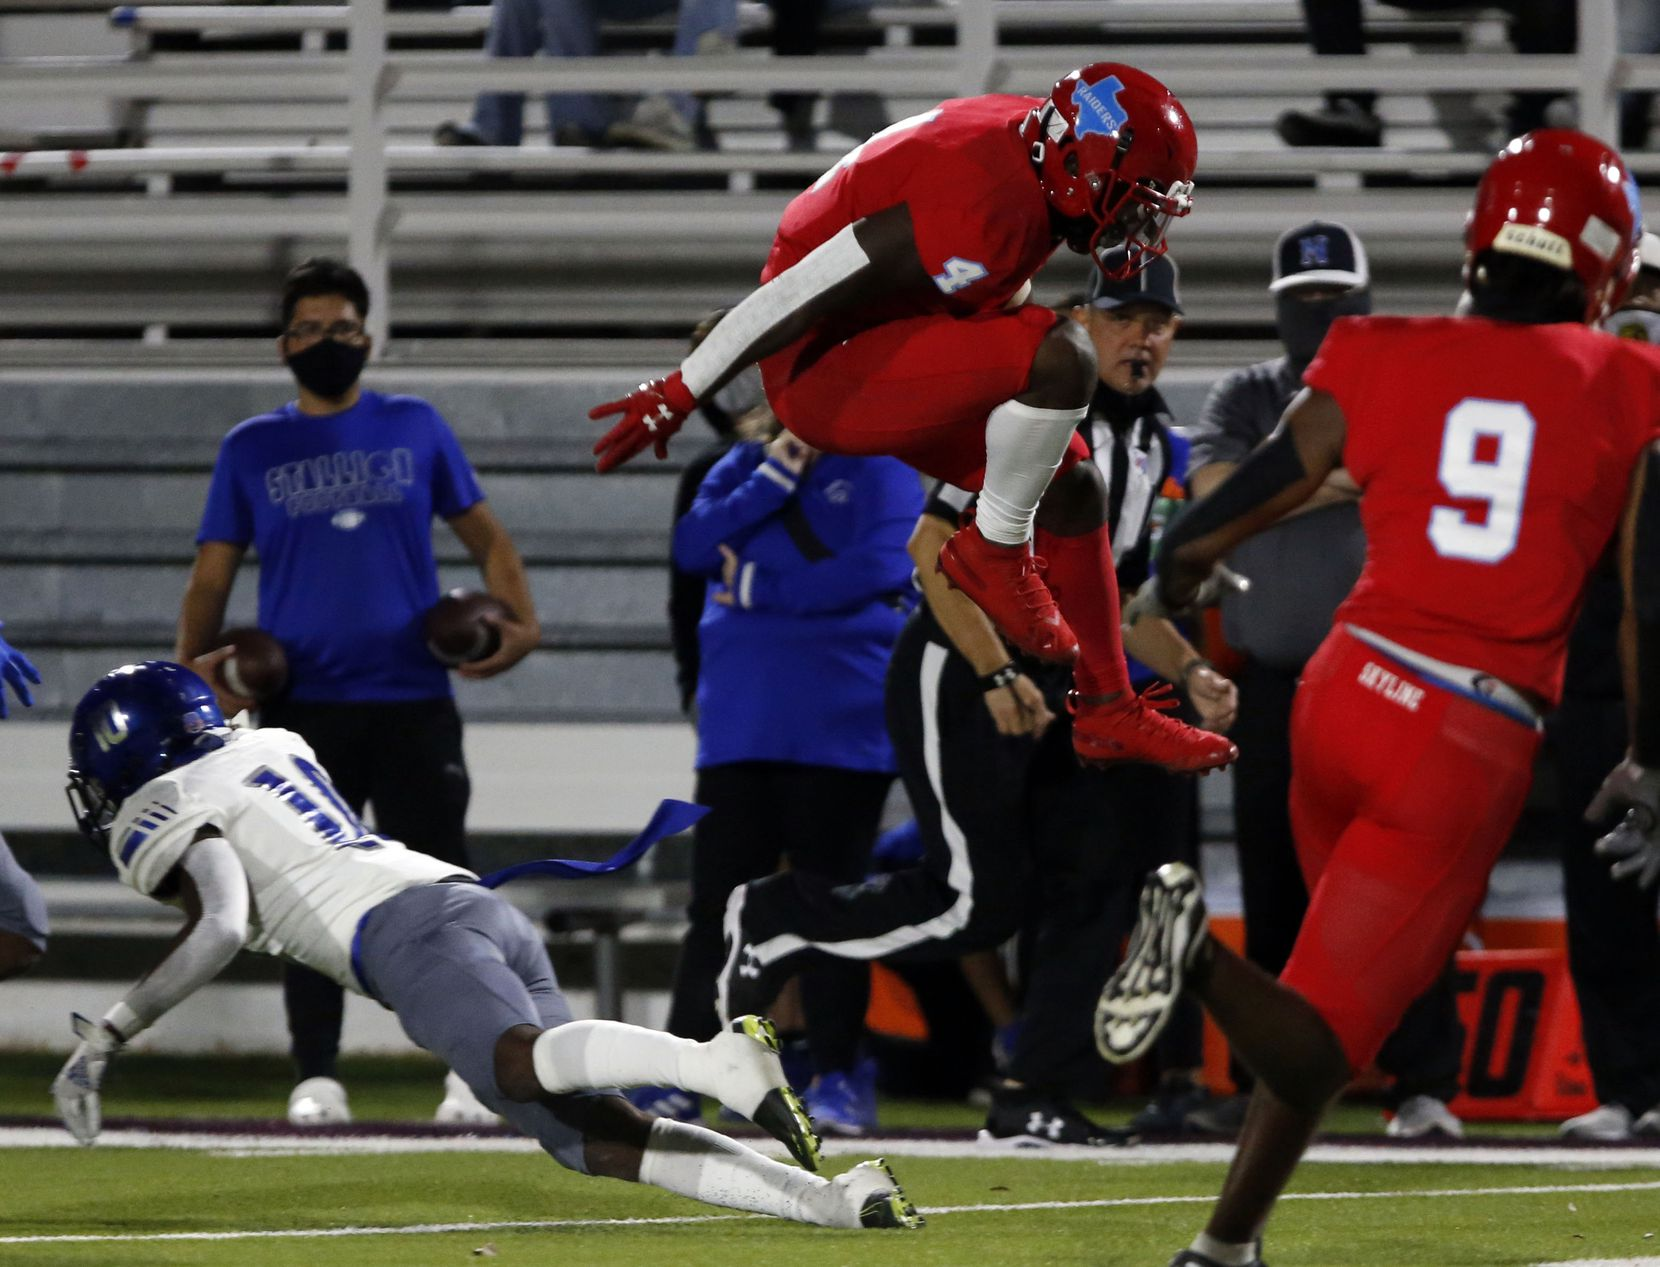 Skyline's Qualon Farrar (4) leaps high to avoid a tackler during the first half of a high school football game against  Skyline North Mesquite High at Forester Field in Dallas on Thursday, November 19, 2020.